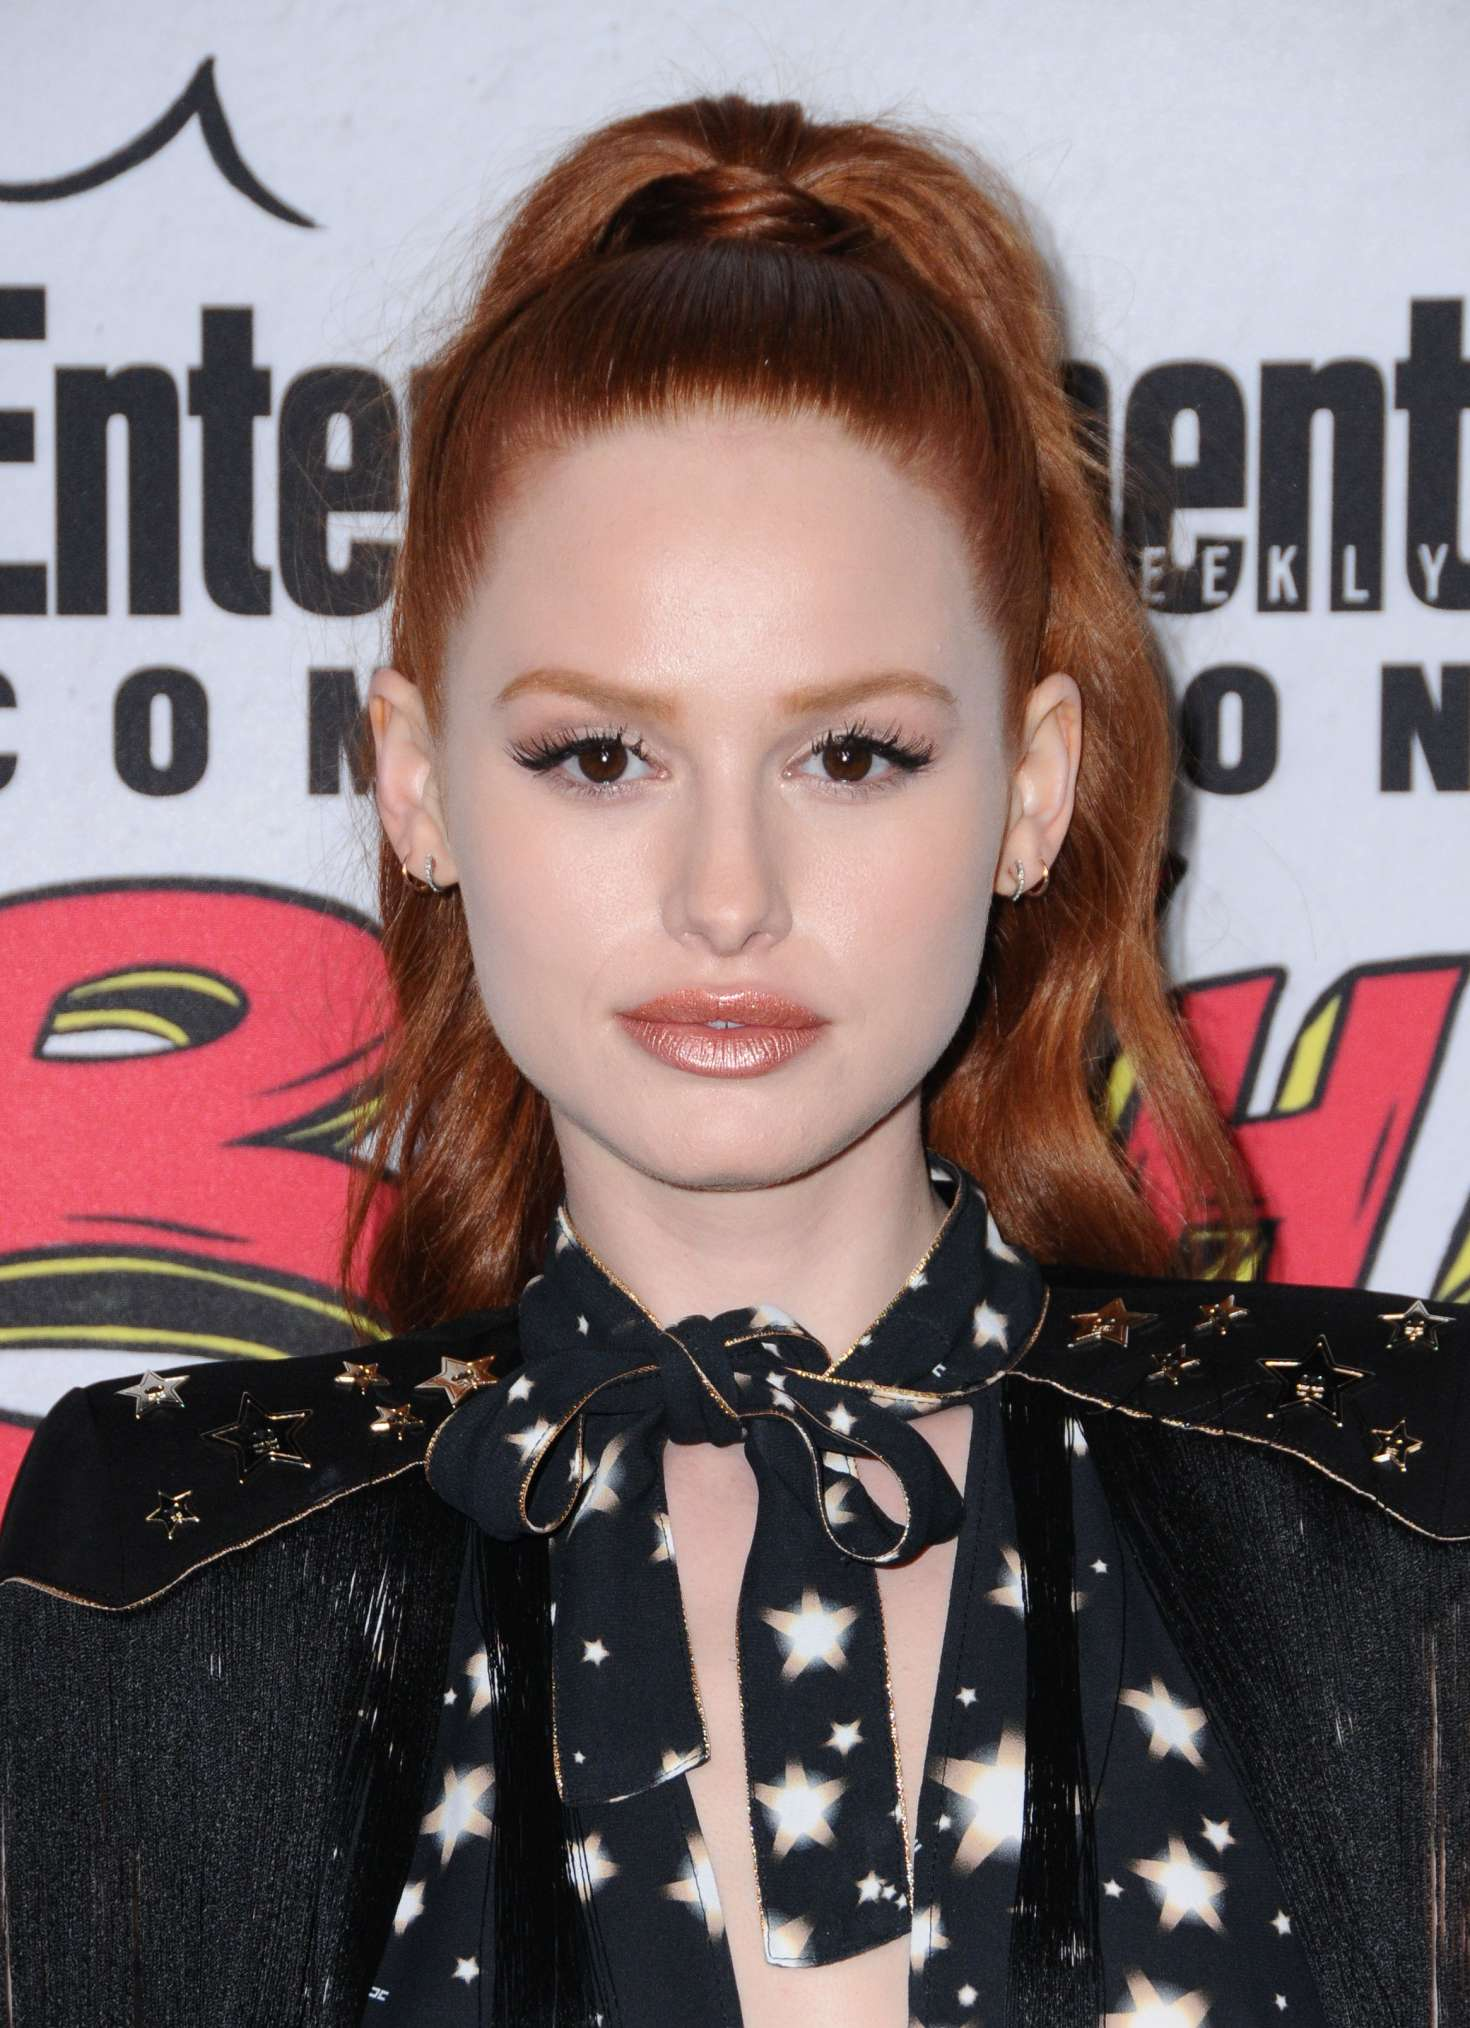 Madelaine Petsch 2017 : Madelaine Petsch: Entertainment Weekly Party at 2017 Comic-Con -05